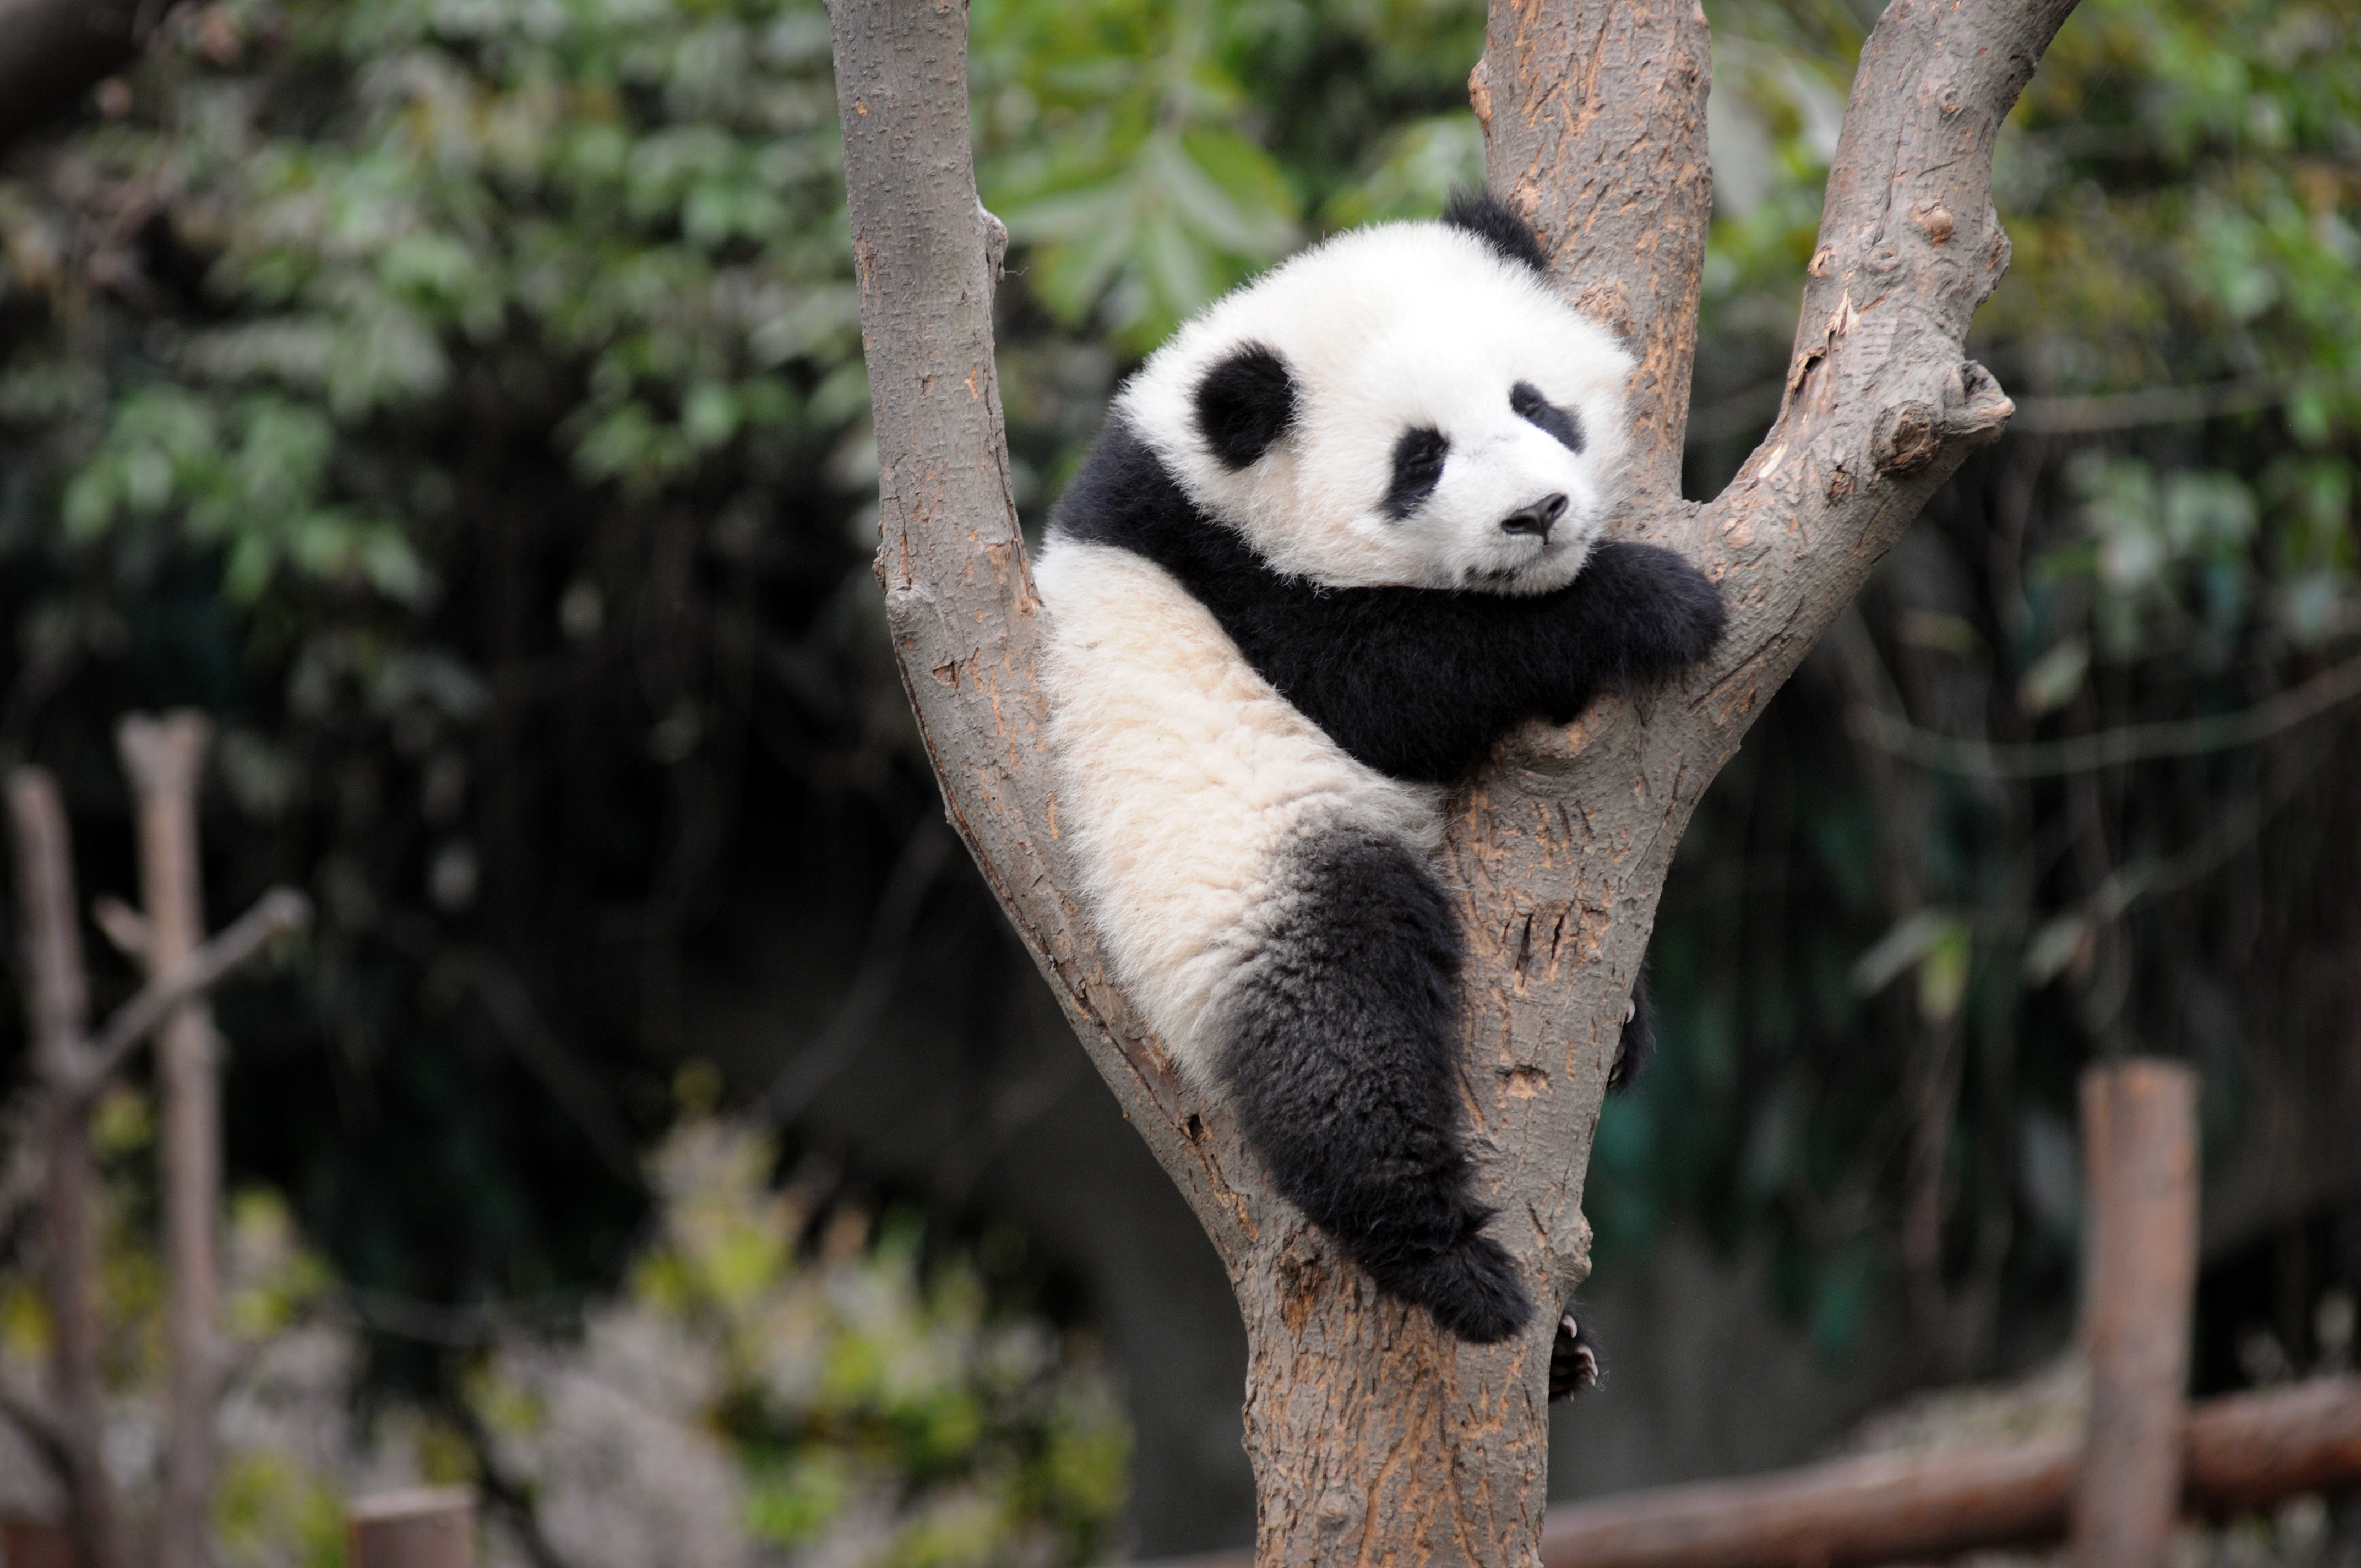 Earthquake Hd Wallpaper Baby Pandas Really Are The Cutest Thing On Earth Clare